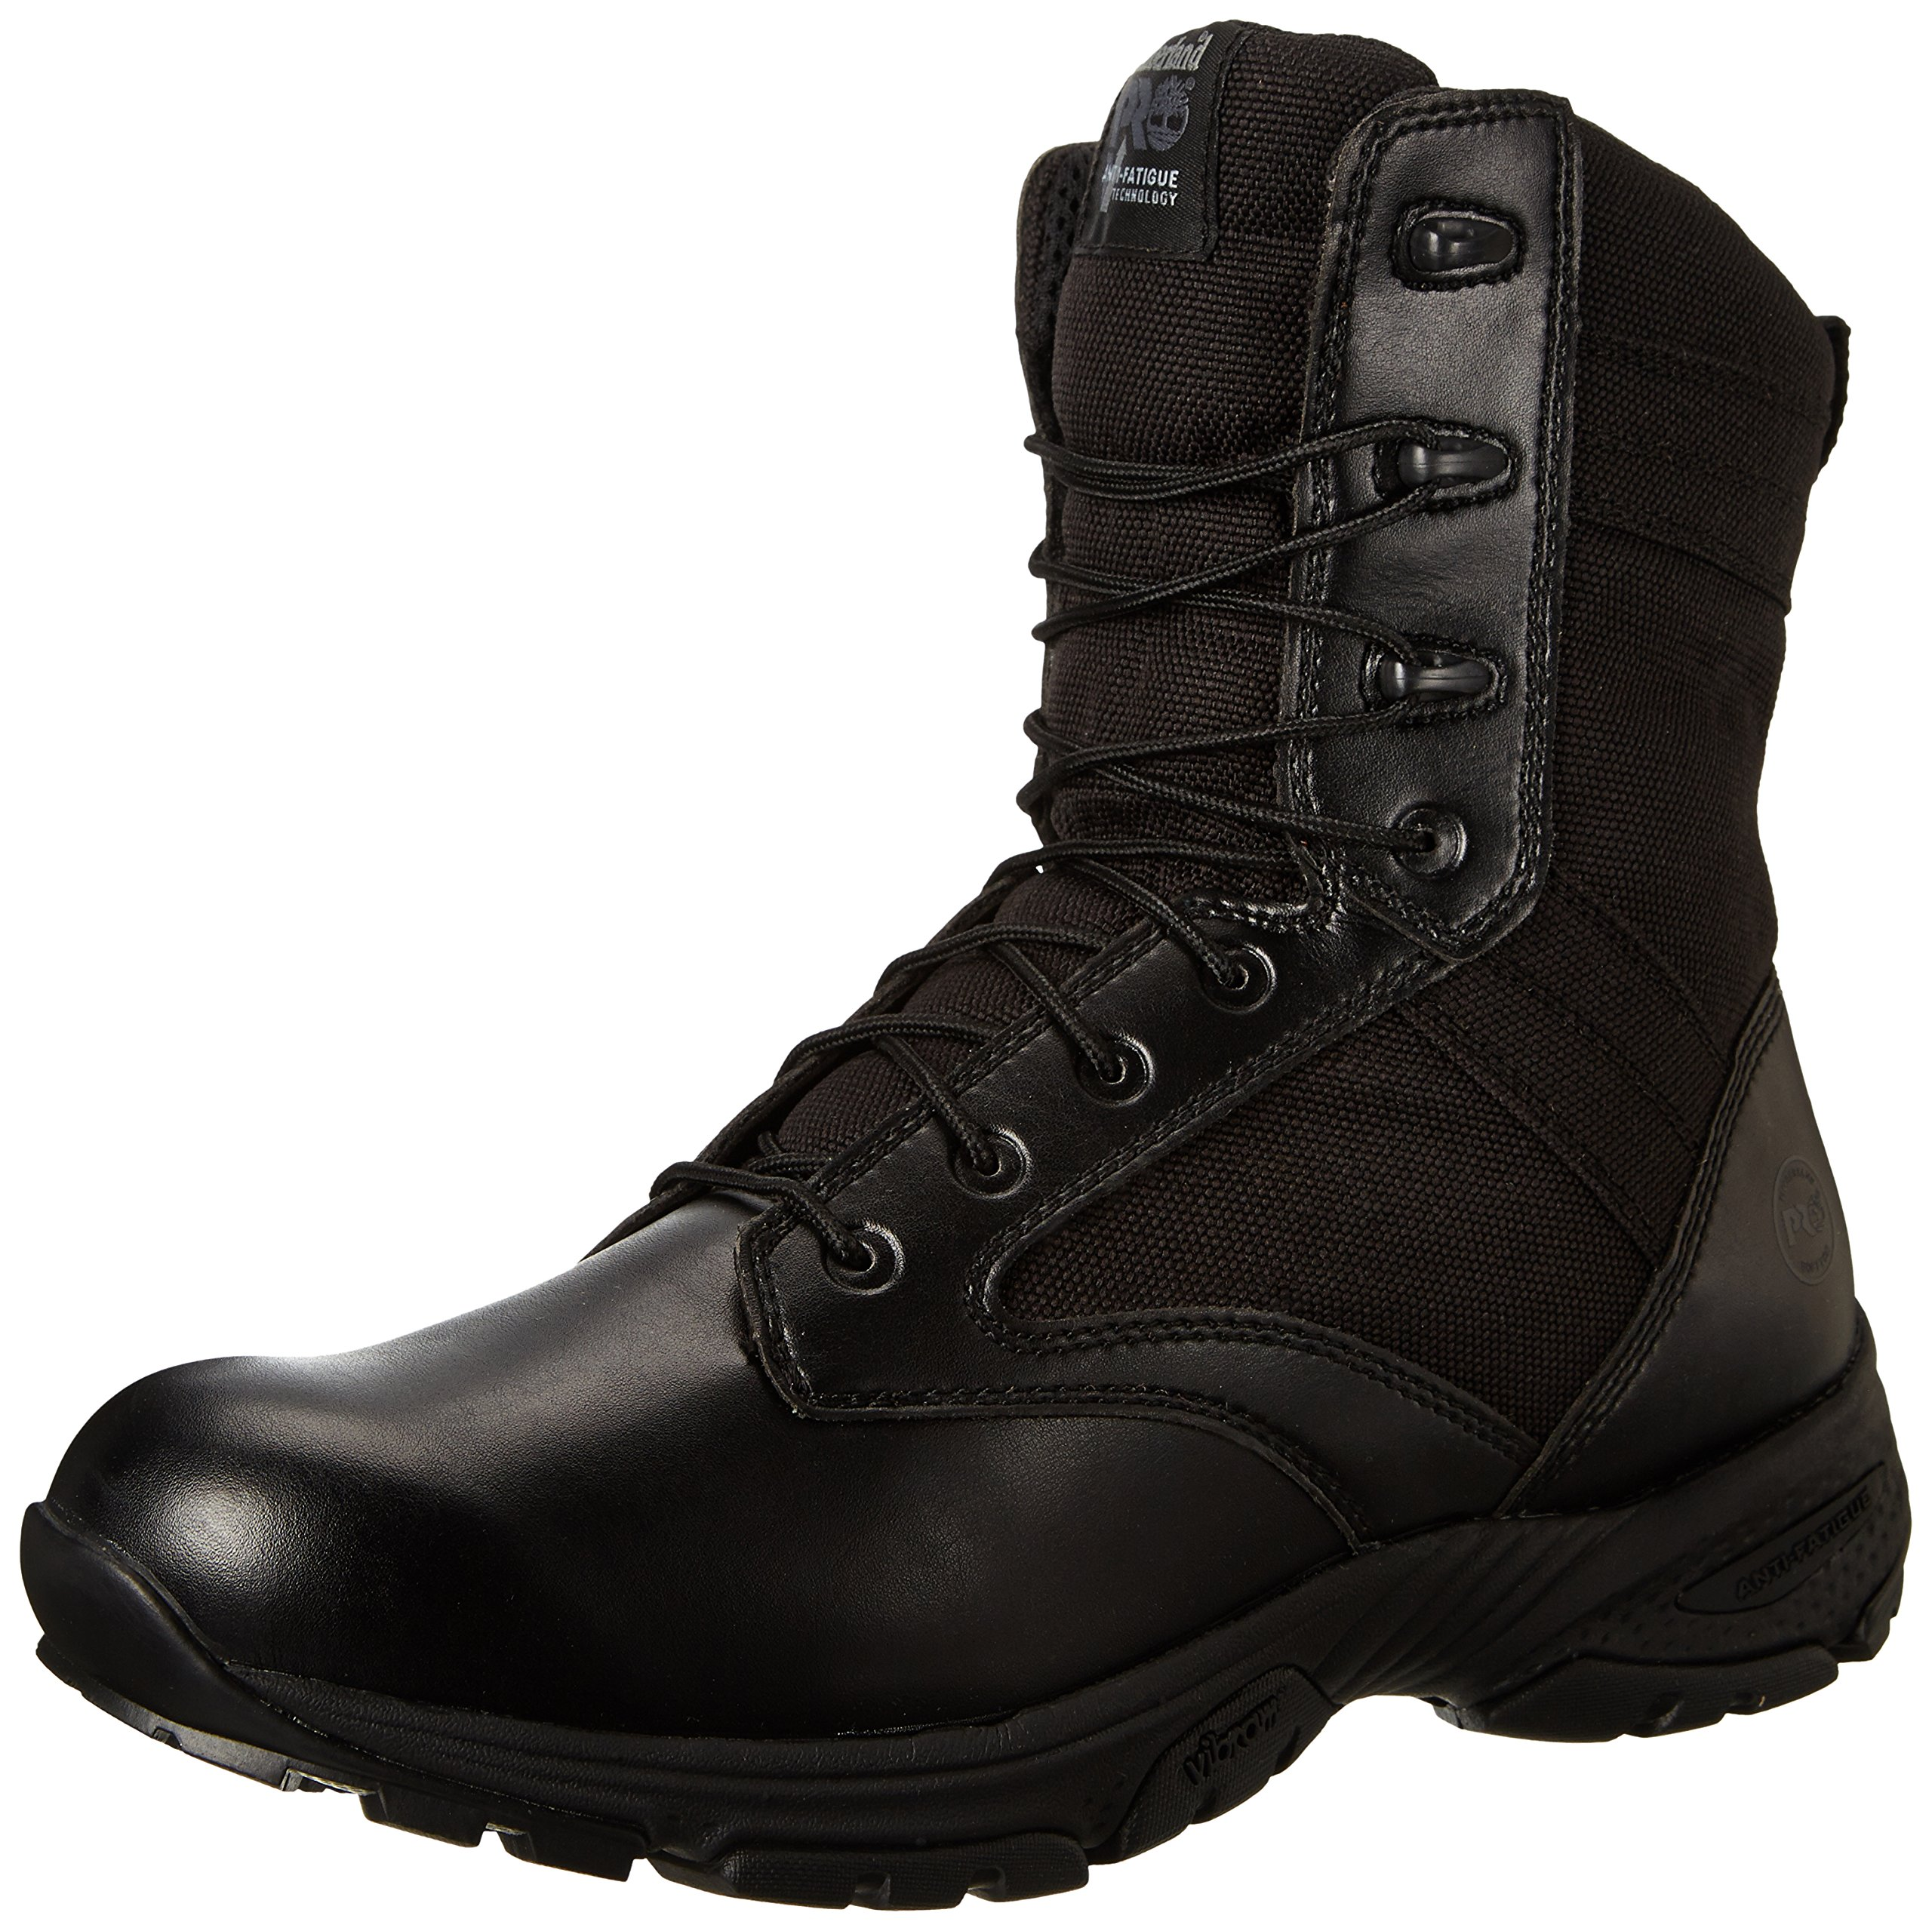 Timberland PRO Men's 8 Inch Valor Soft Toe Black Duty Boot,Black Smooth With Textile,9.5 M US